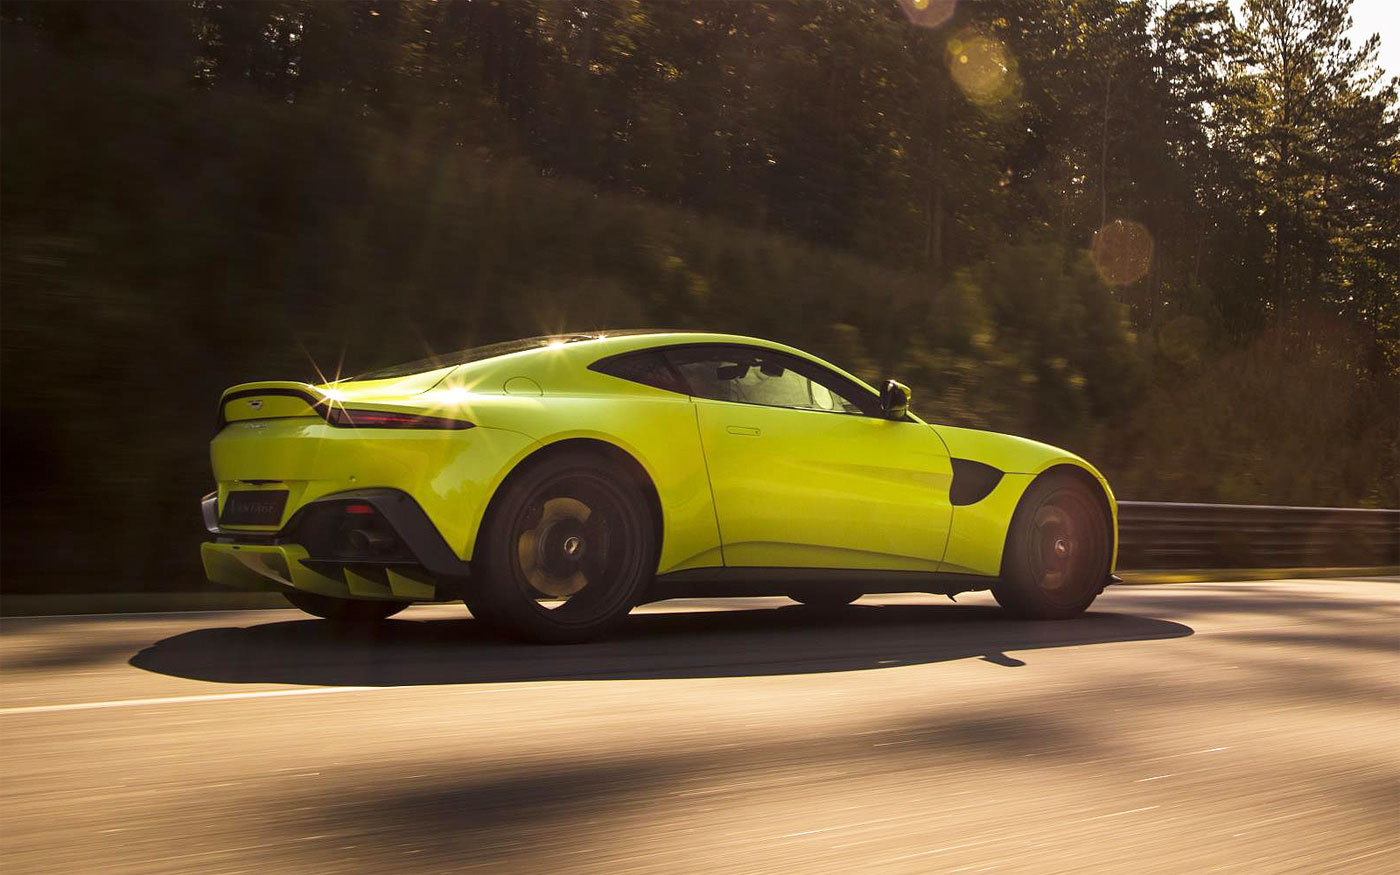 New Vantage: Bold New Look, Intensified Performance and Dynamics 12